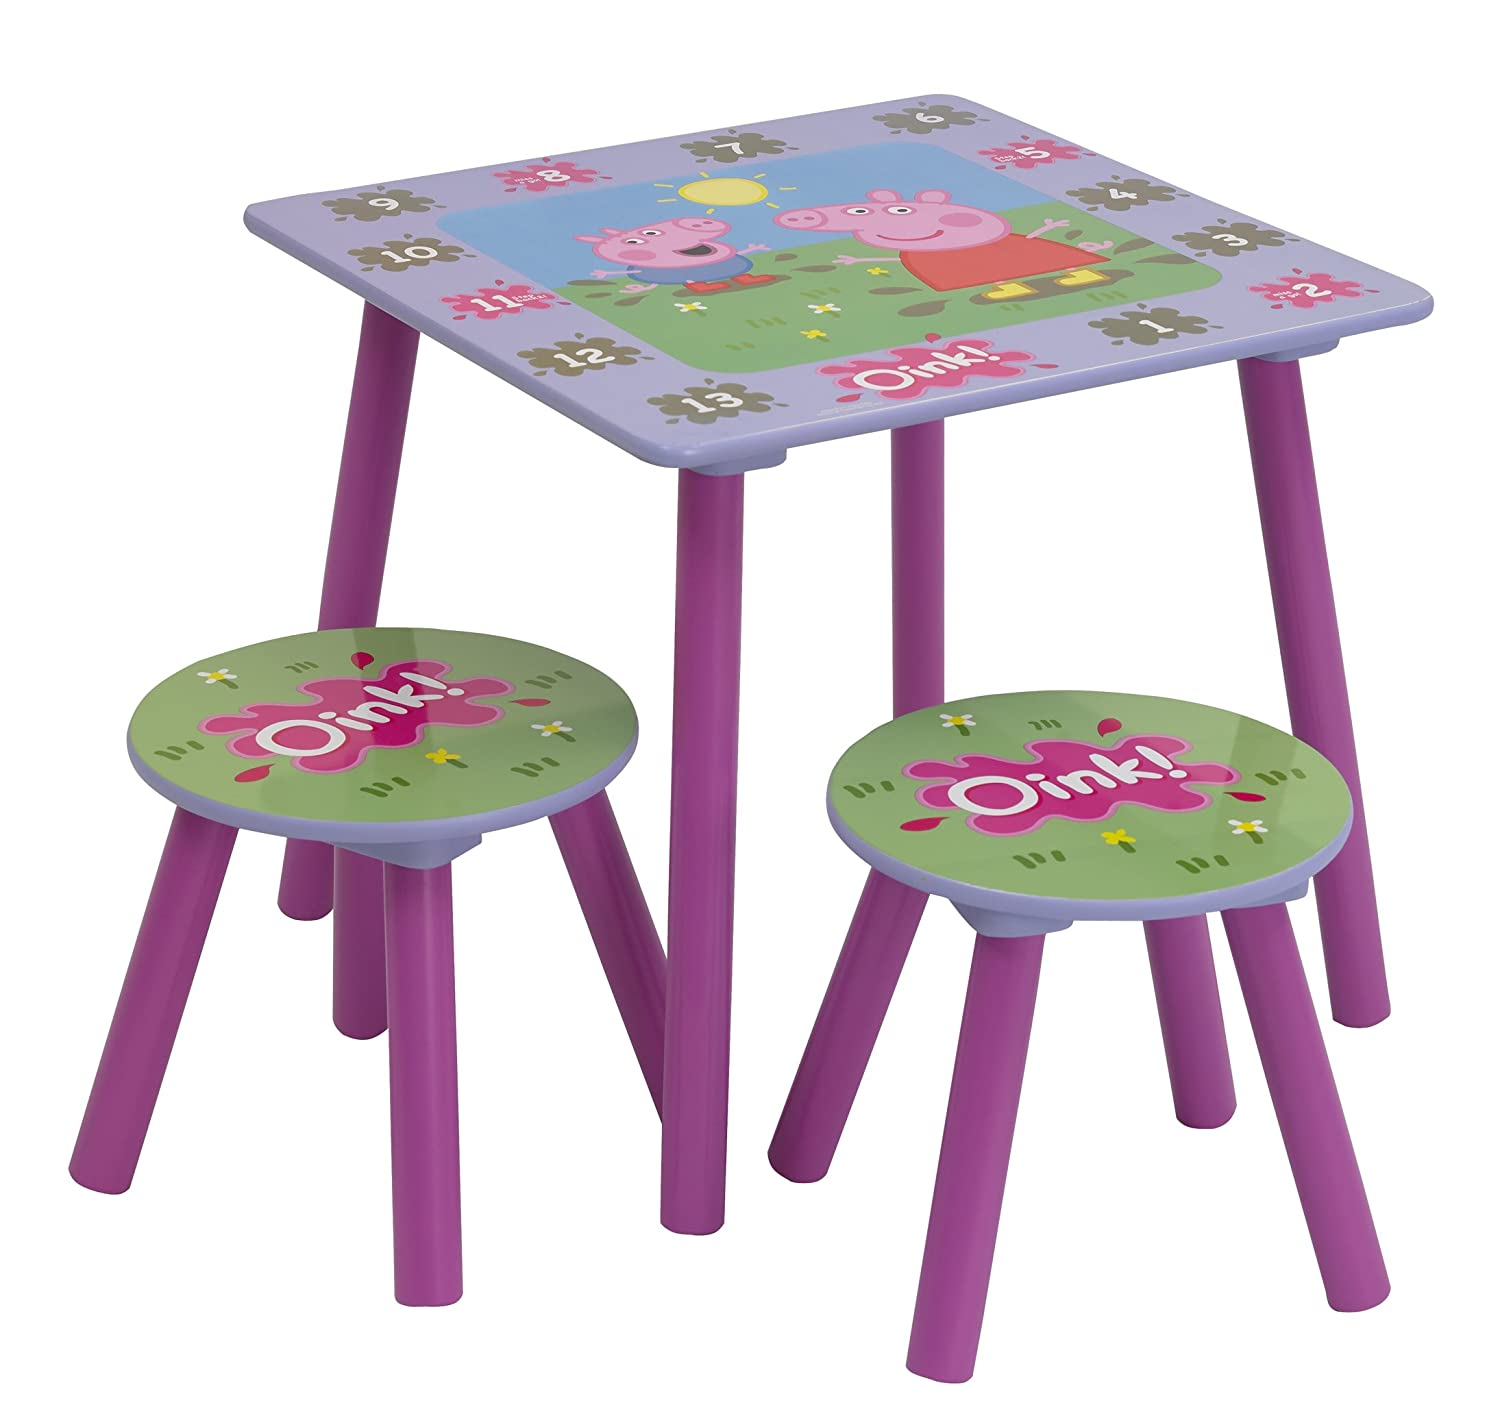 Peppa Pig Table And Stools Amazon Kitchen & Home